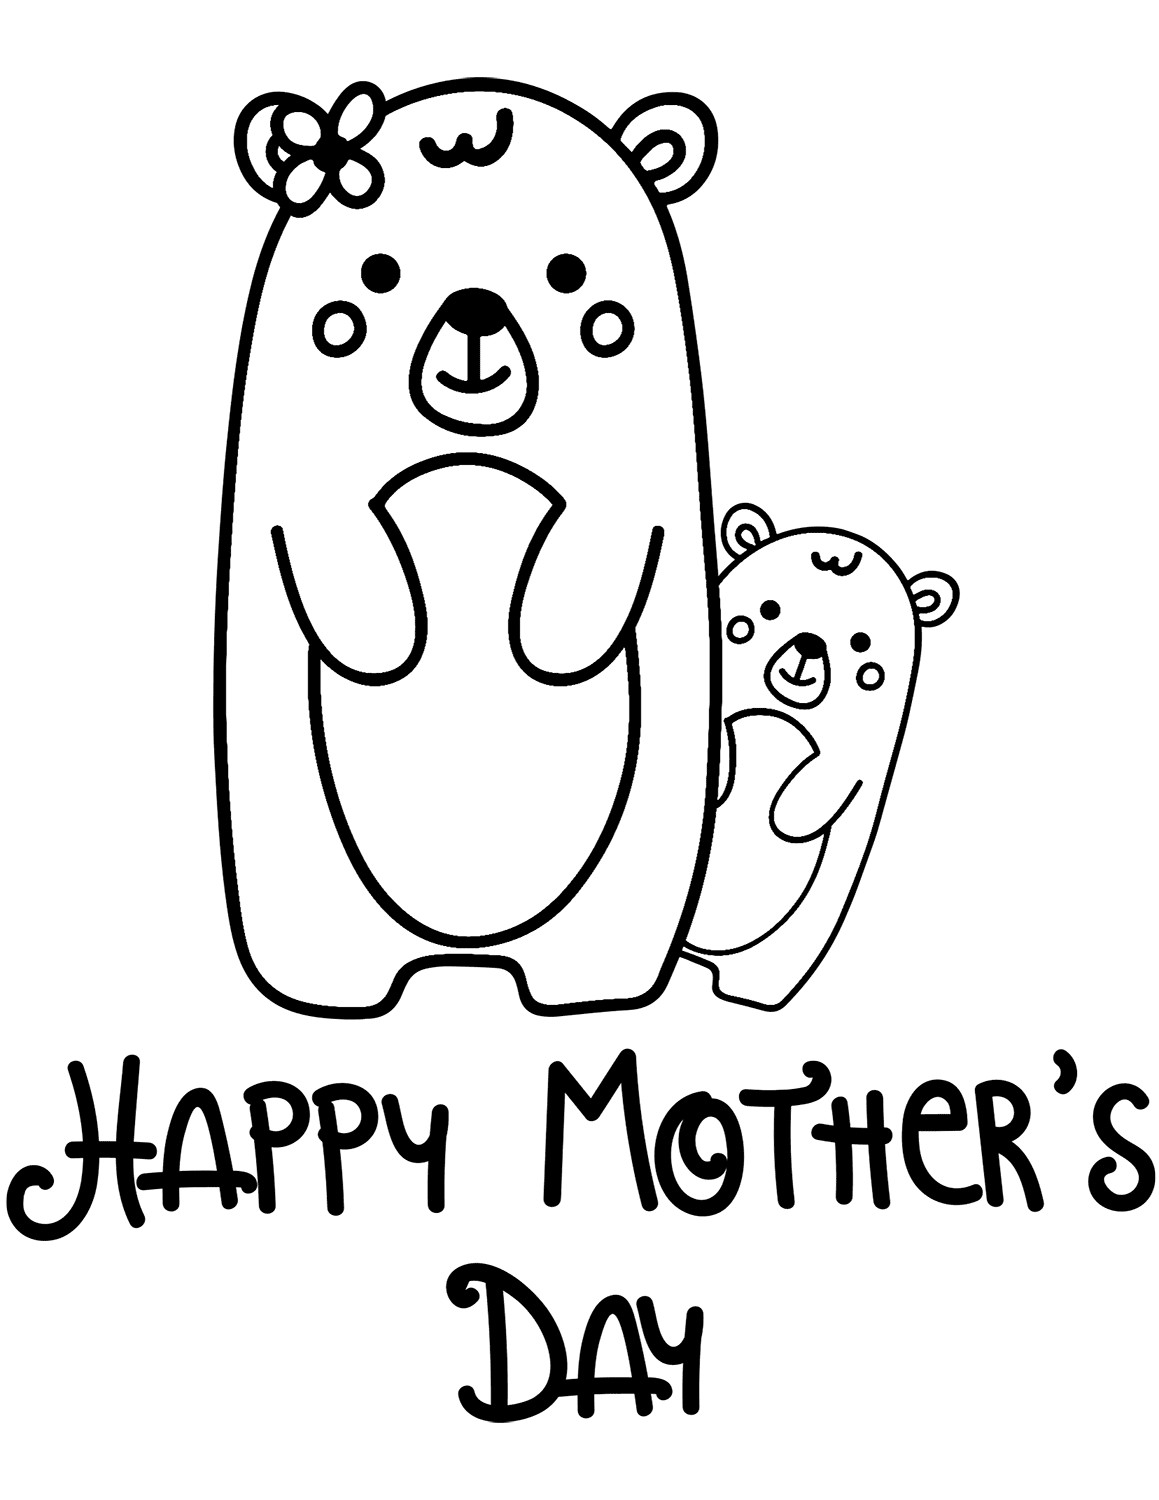 Best ideas about Mothers Day Coloring Sheets For Kids . Save or Pin 30 Free Printable Mother's Day Coloring Pages Now.